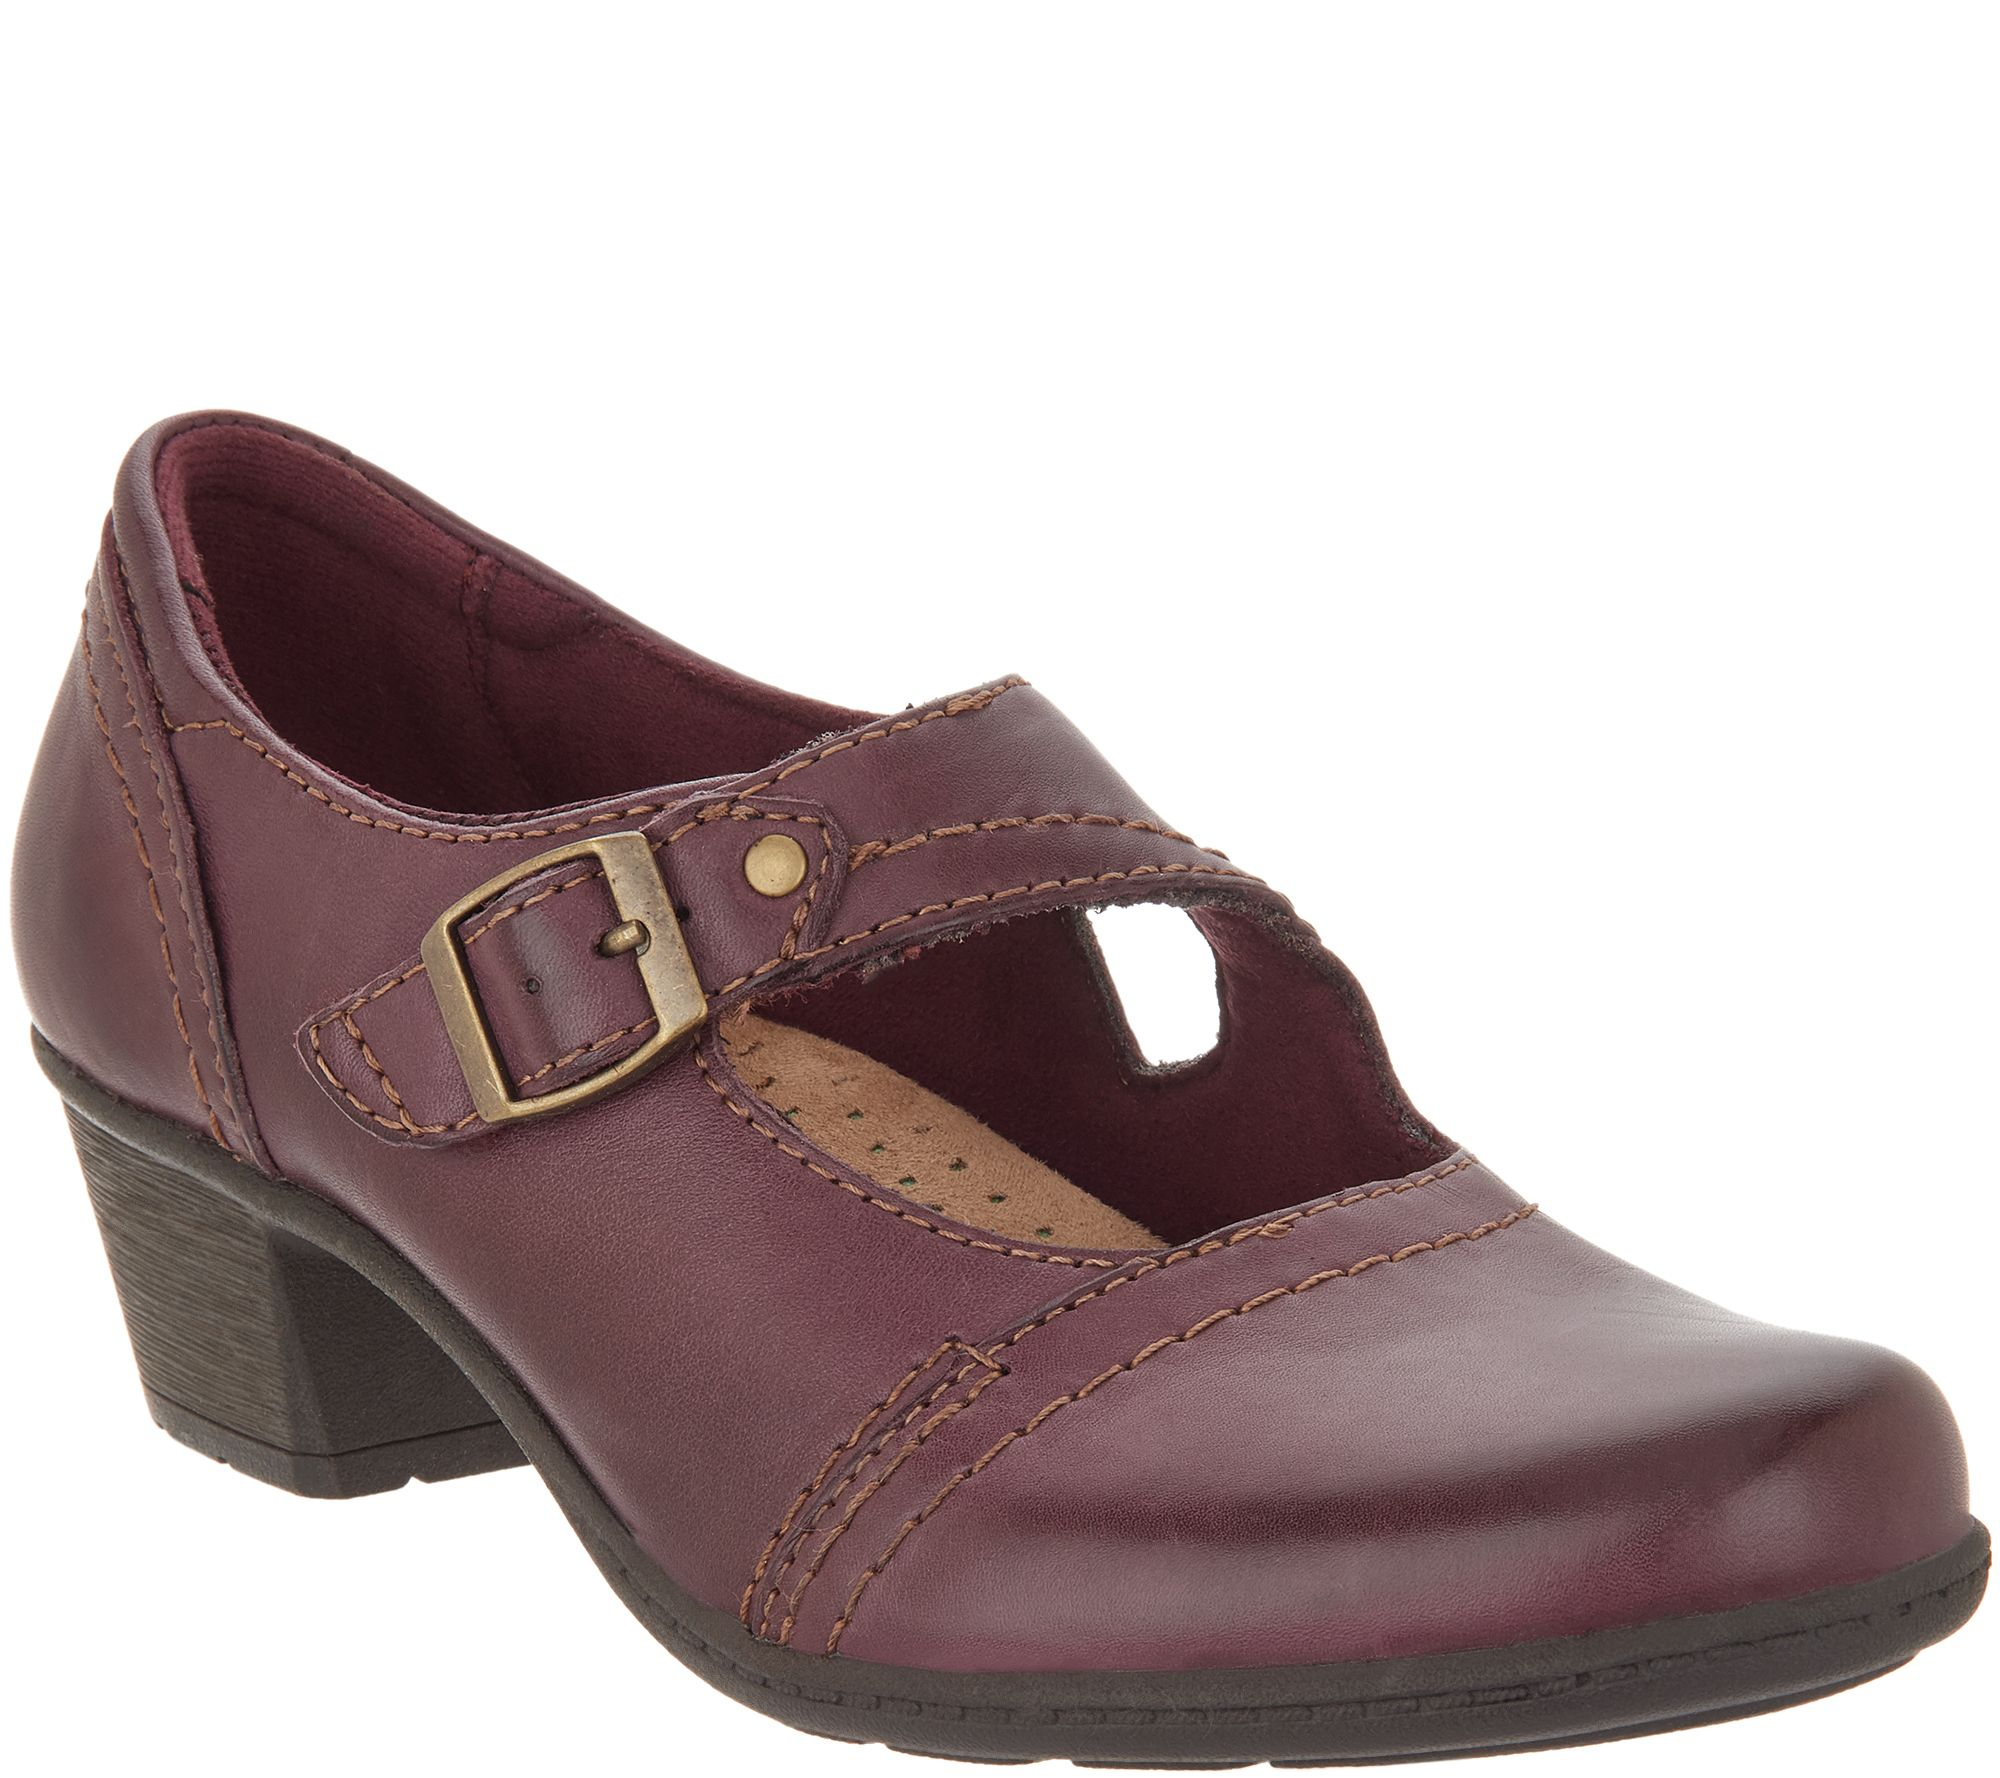 2398bce964962 Earth Origins Leather Mary Janes with Buckle - Meredith - Page 1 — QVC.com